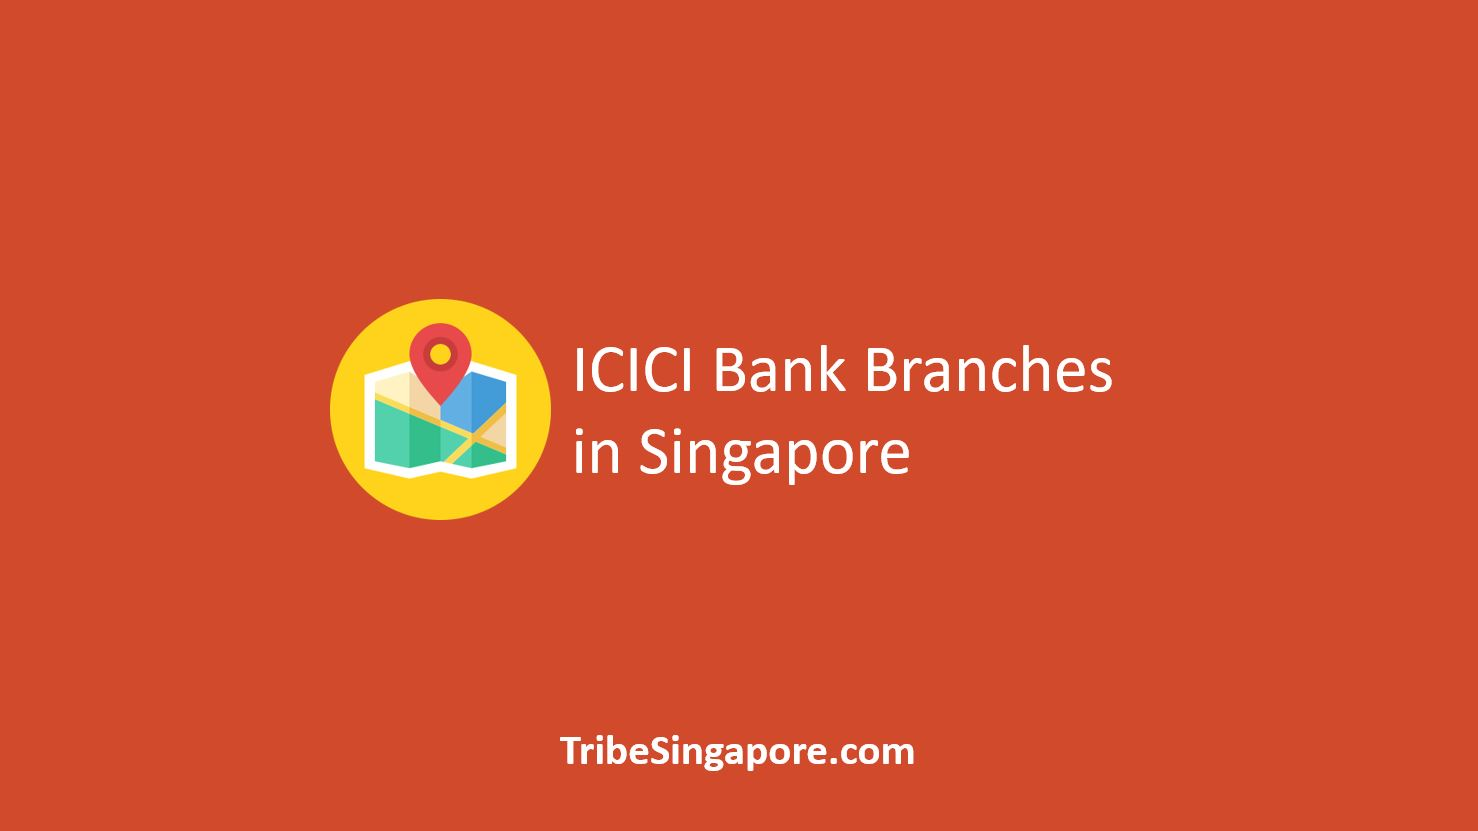 ICICI Bank Branches in Singapore